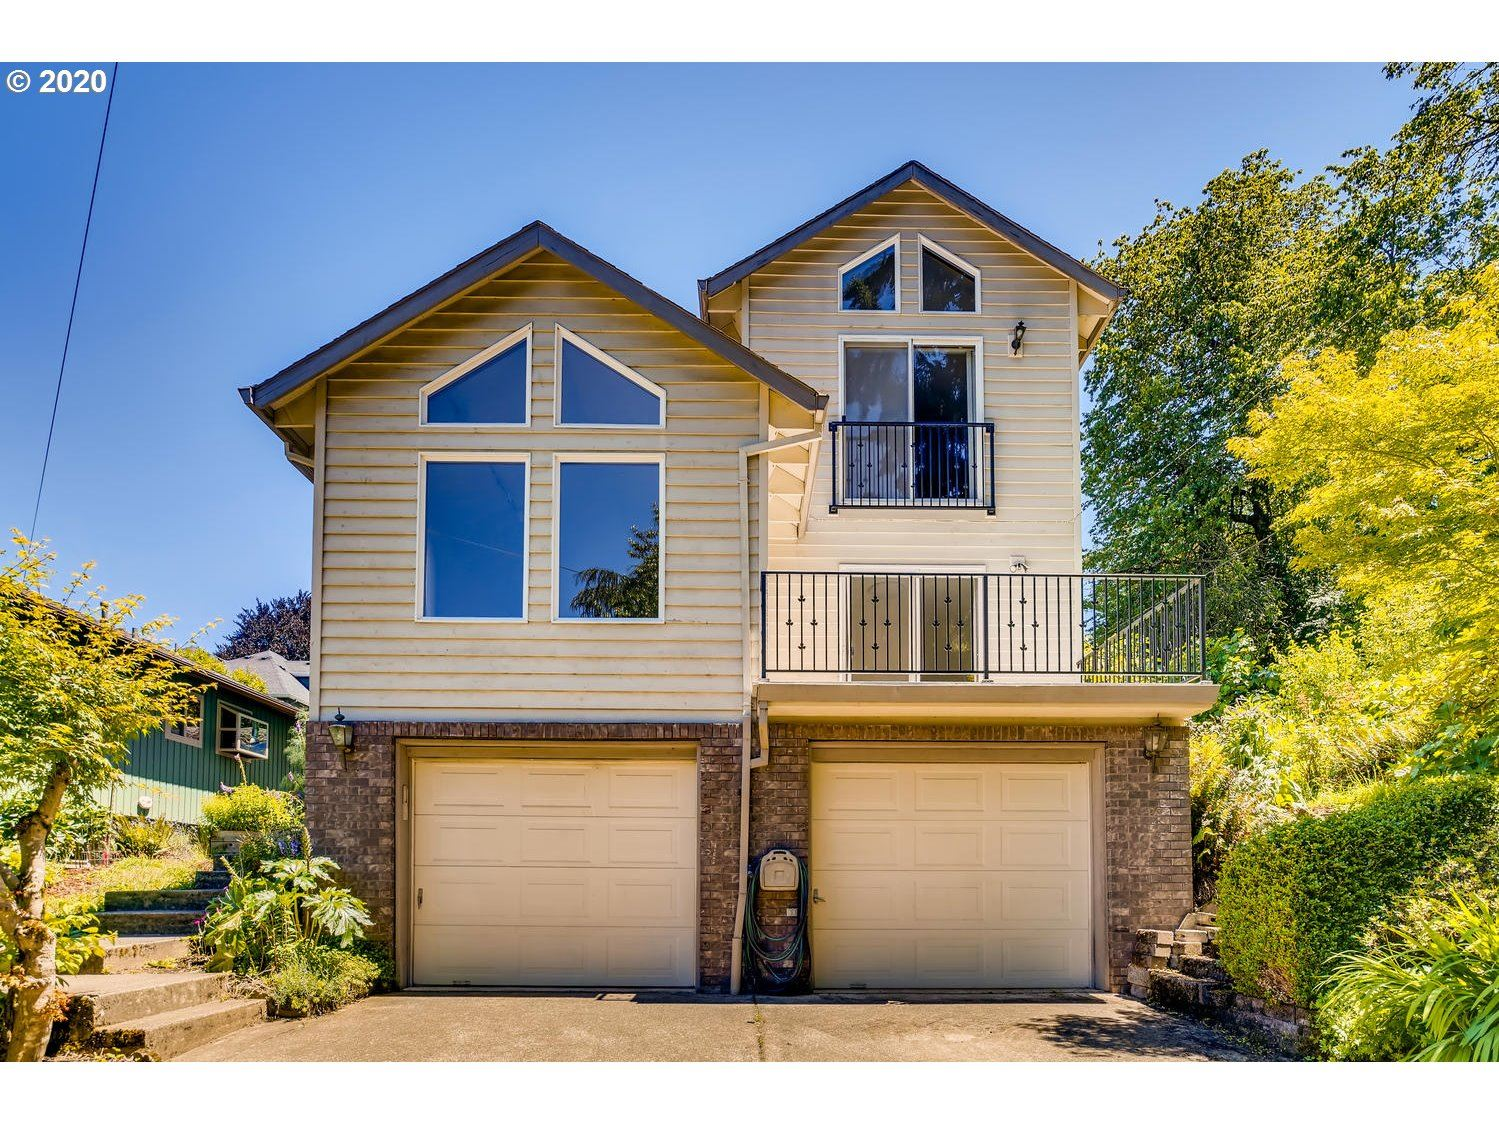 6034 SE 38TH AVE, Portland, OR 97202 - MLS#: 20093163